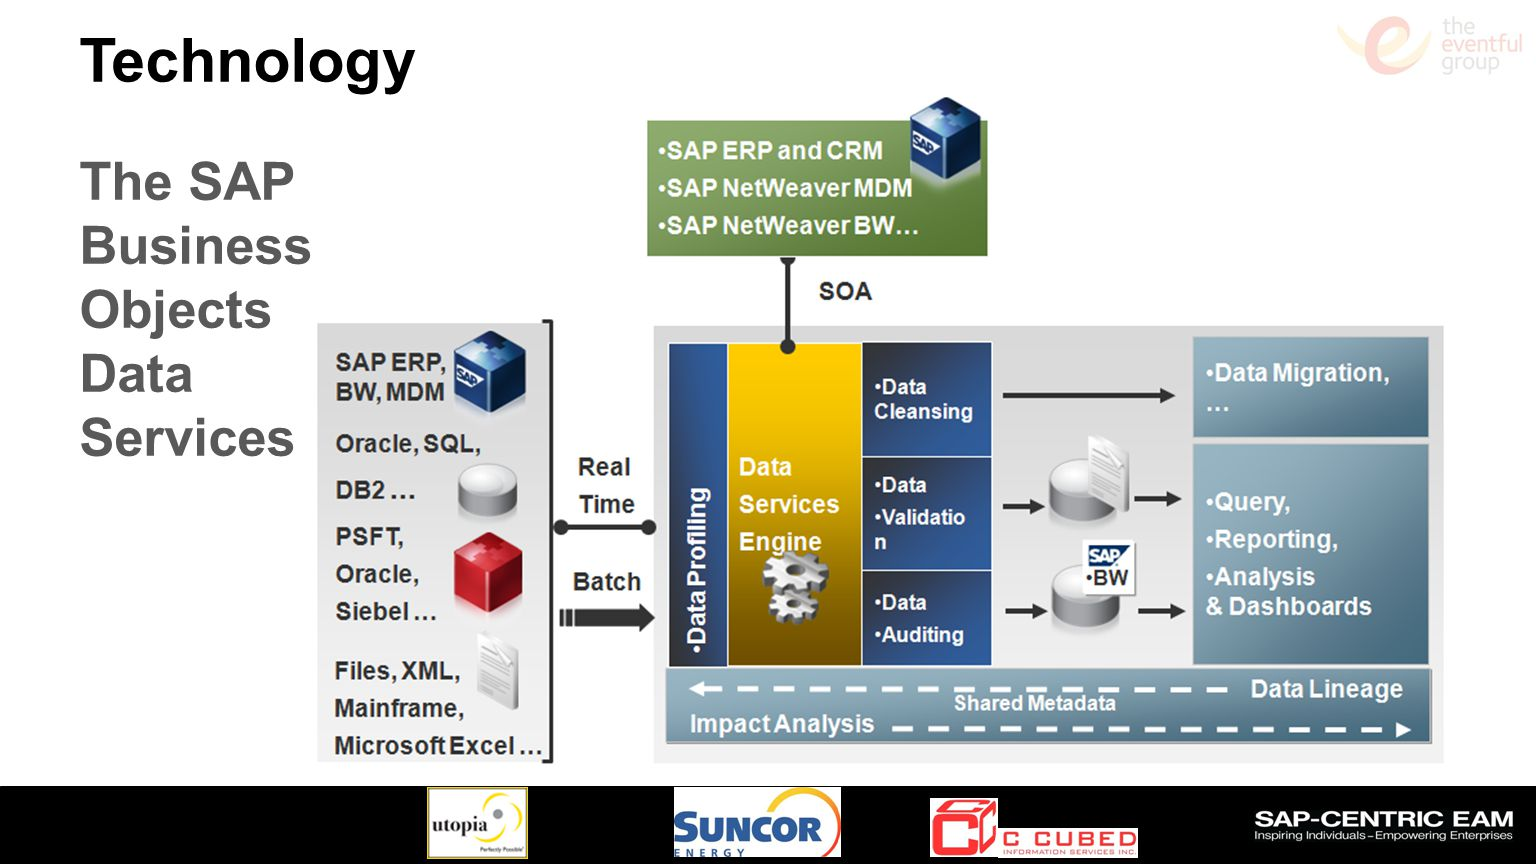 Technology The SAP Business Objects Data Services